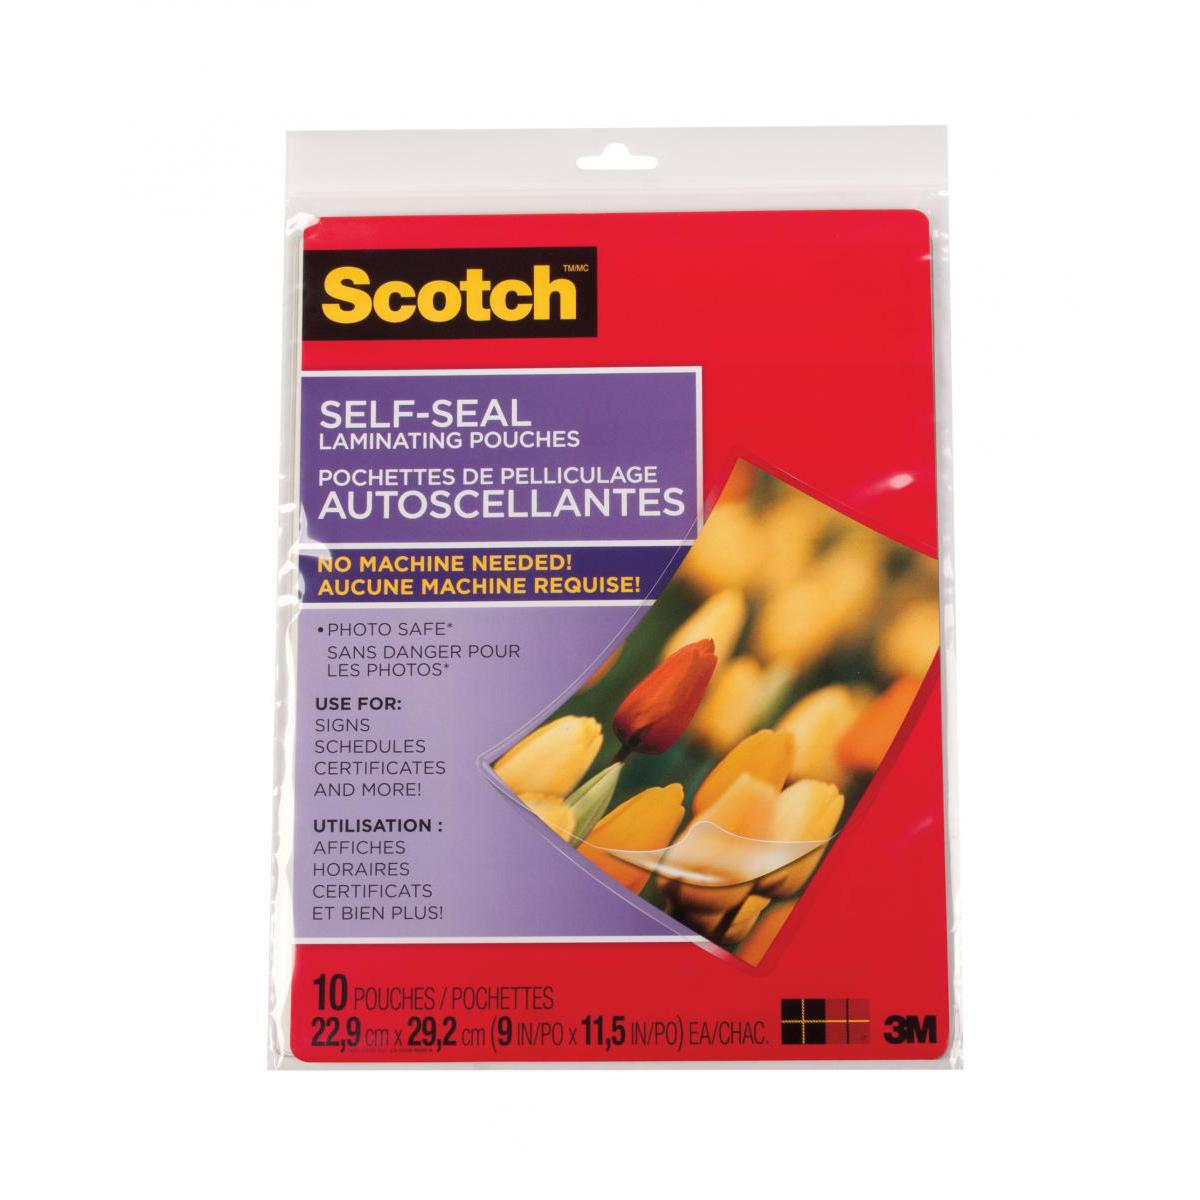 Scotch® Self-Seal Laminating Pouches 10-Pack